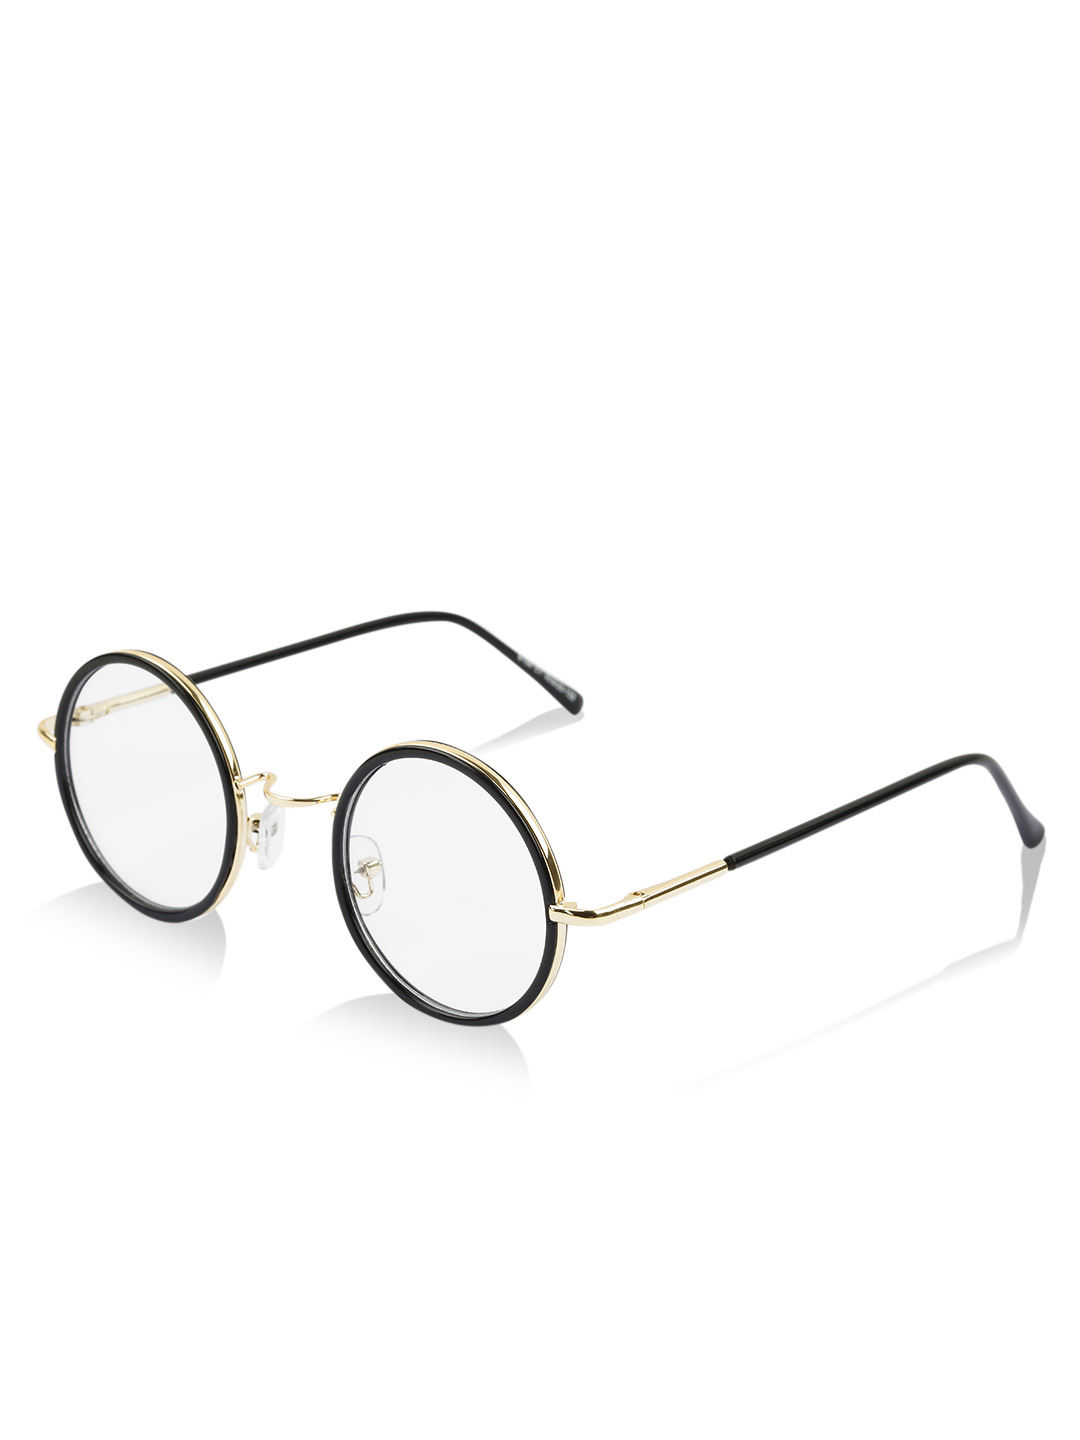 Pataaka Black and Gold Round Frame Clear Glasses 1